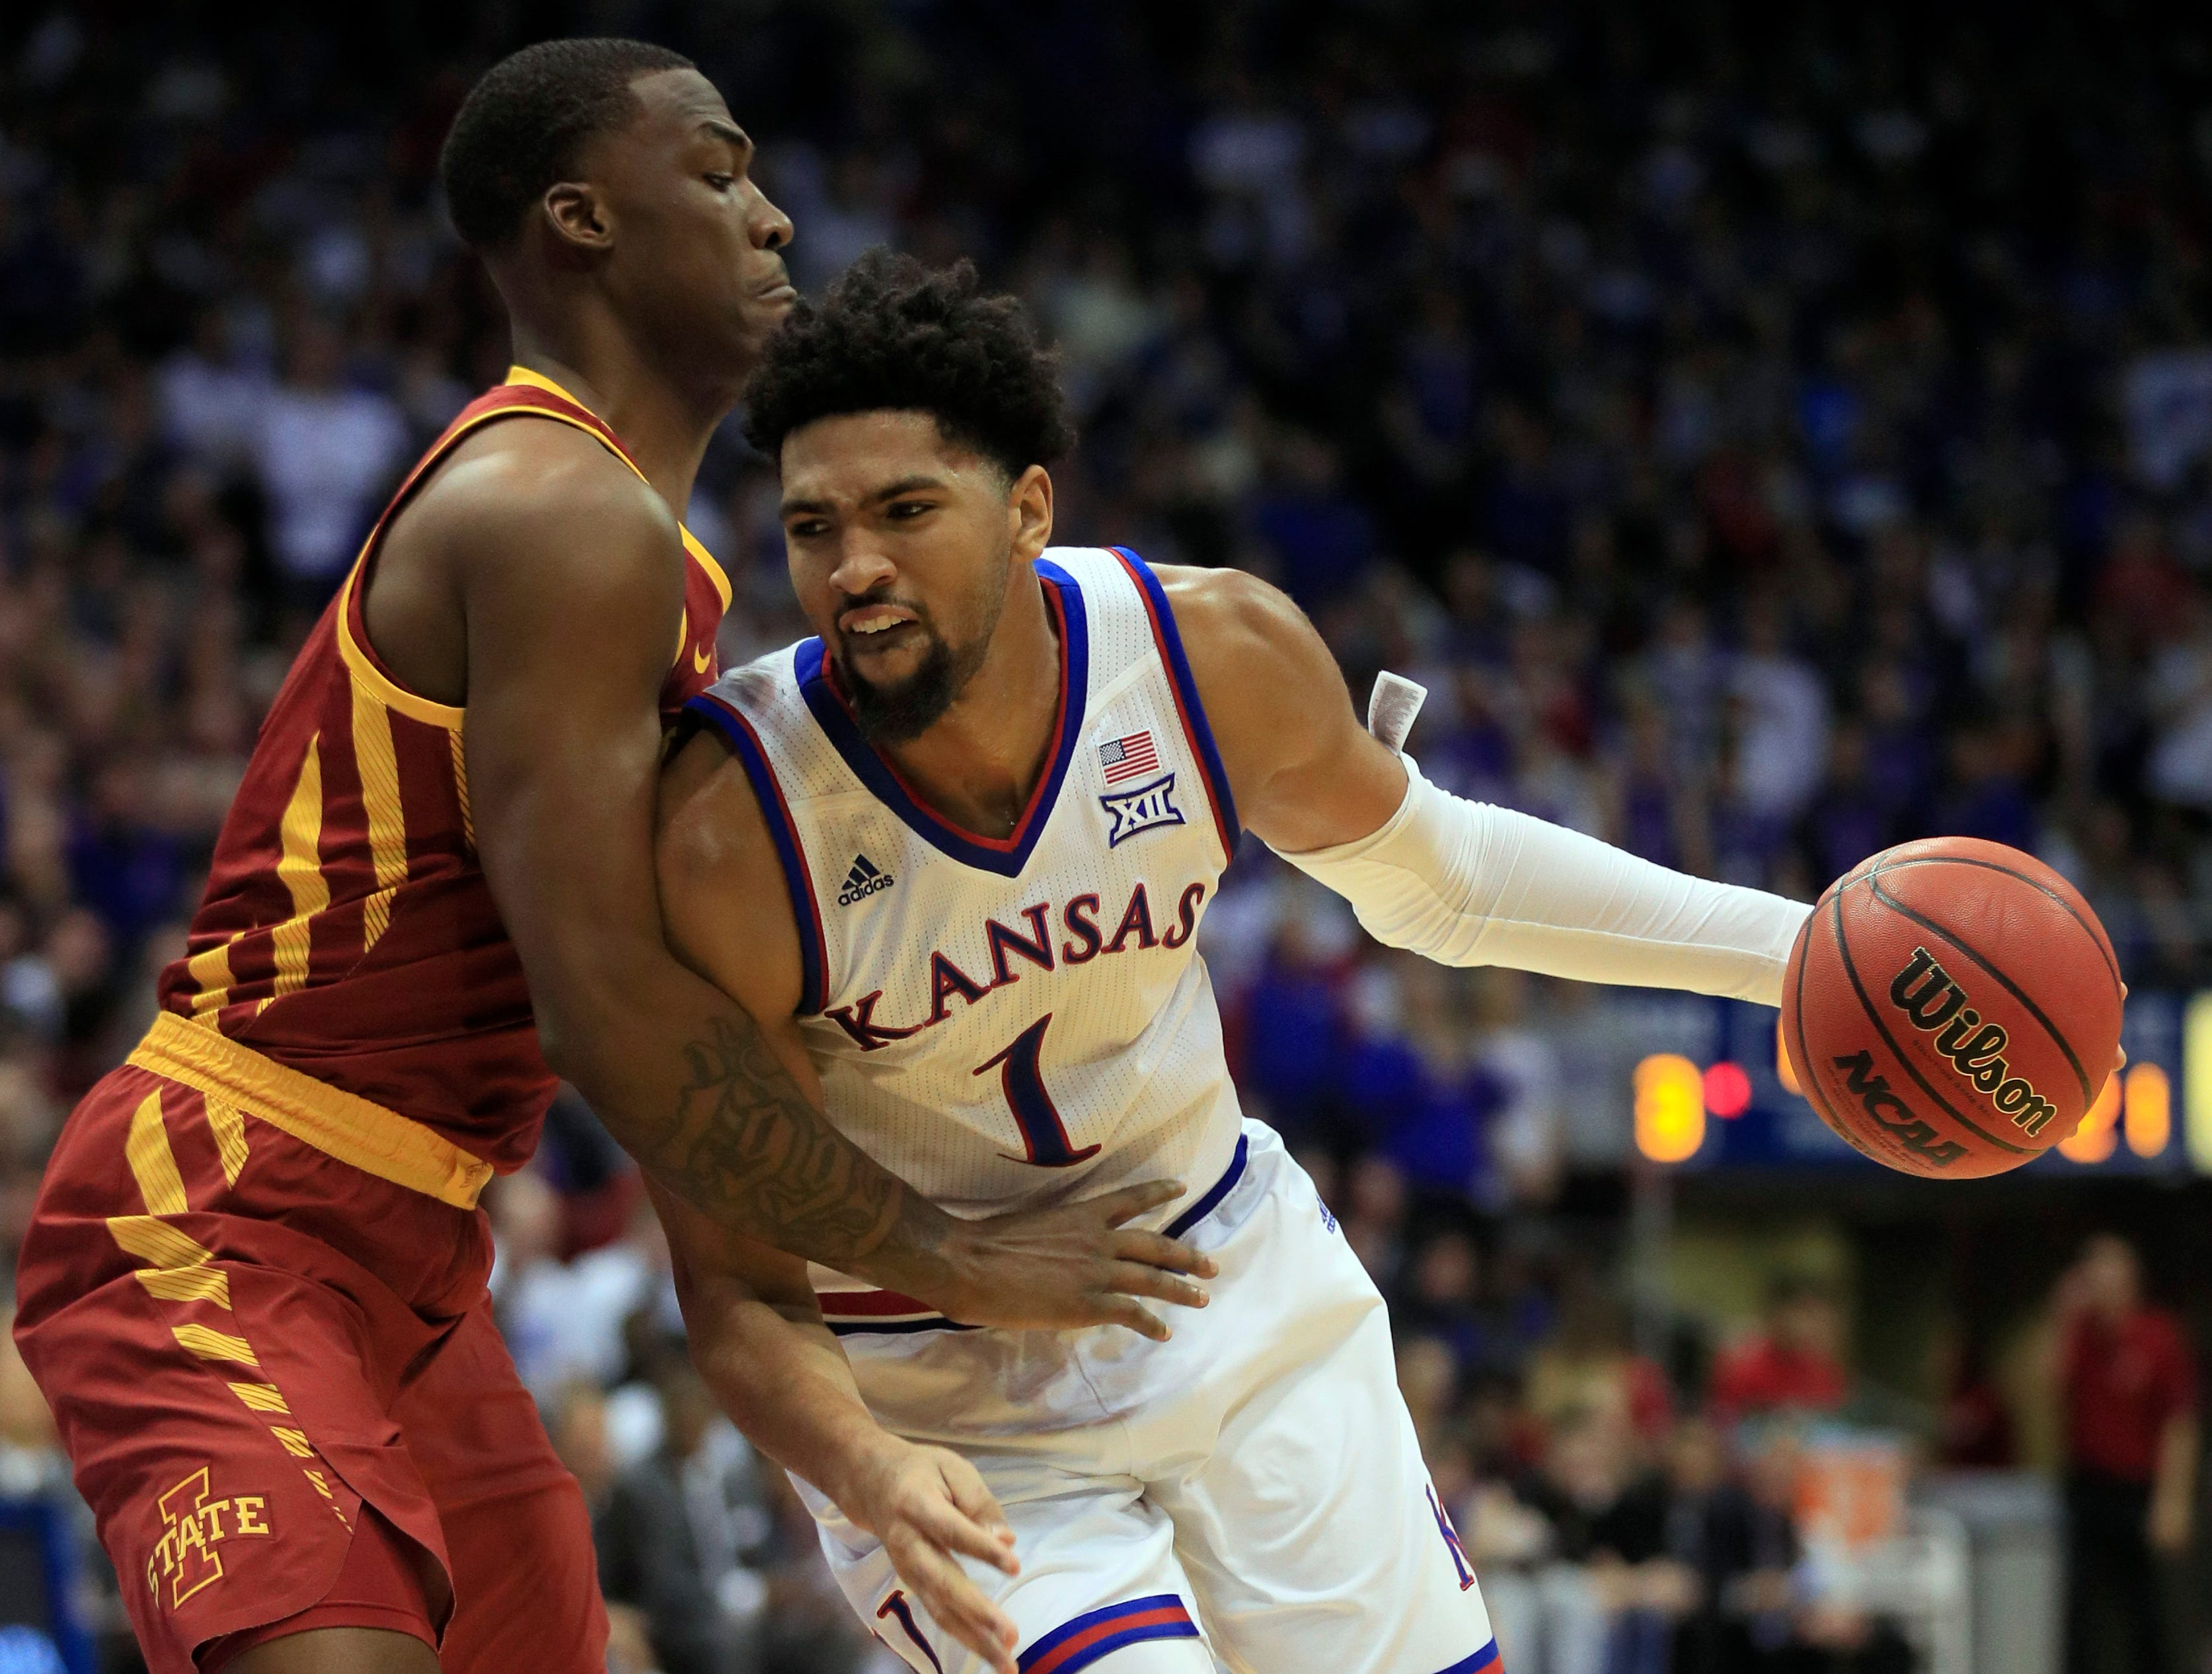 Kansas forward Dedric Lawson (1) is fouled by Iowa State forward Cameron Lard, left, during the first half of an NCAA college basketball game in Lawrence, Kan., Monday, Jan. 21, 2019.